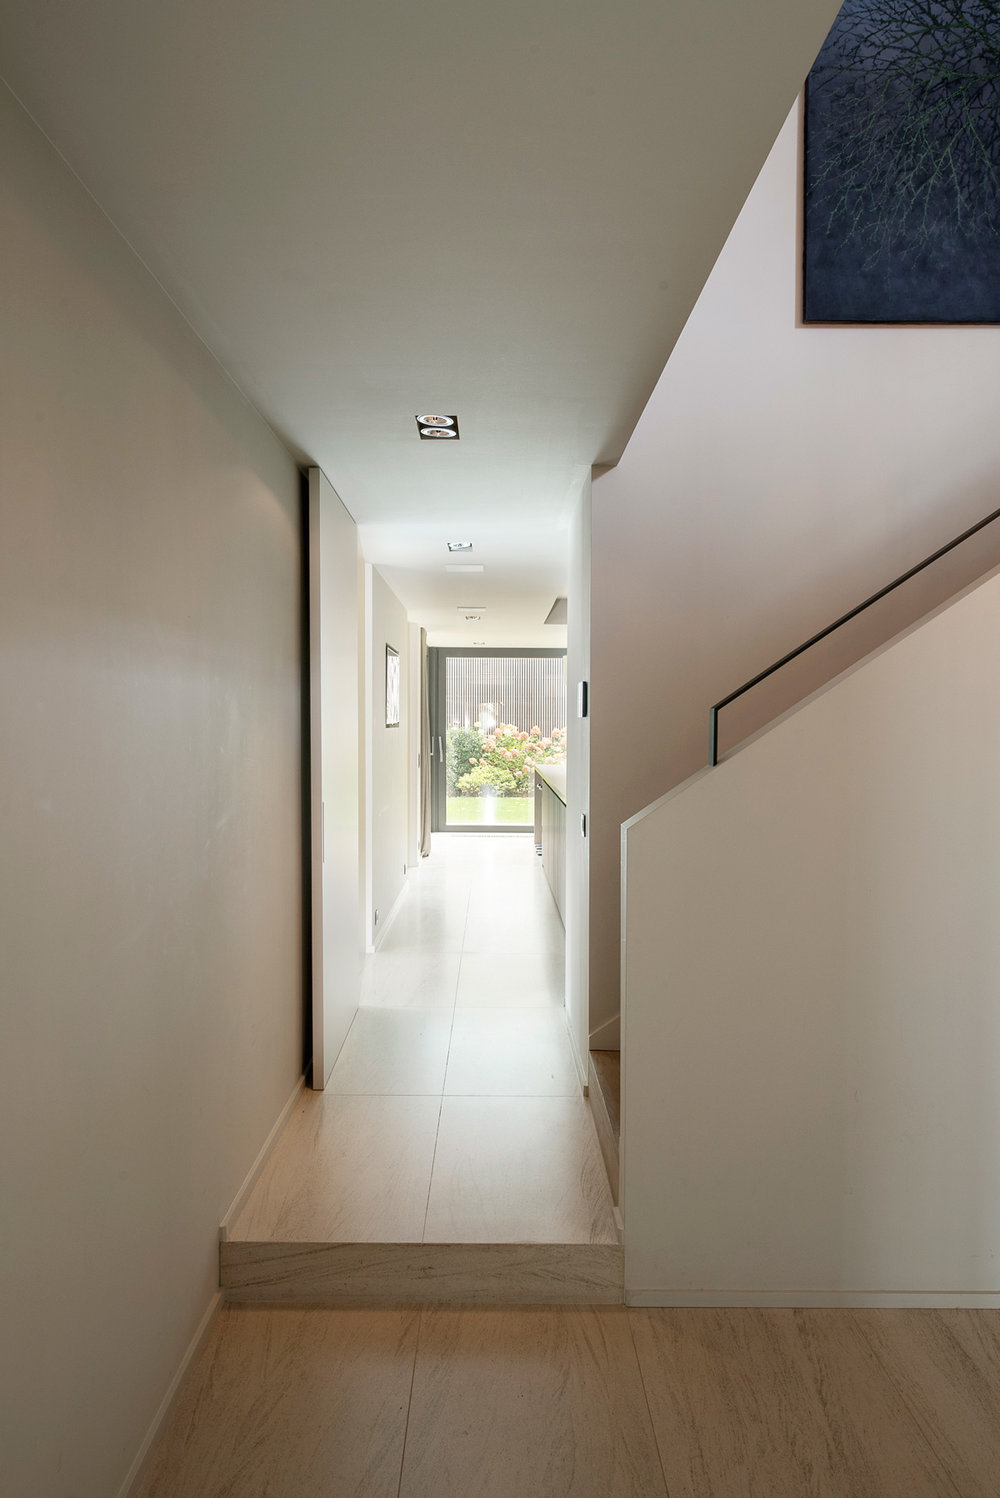 VERT CHASSEUR EXTENSION & RENOVATION OF A VILLA BRUSSELS